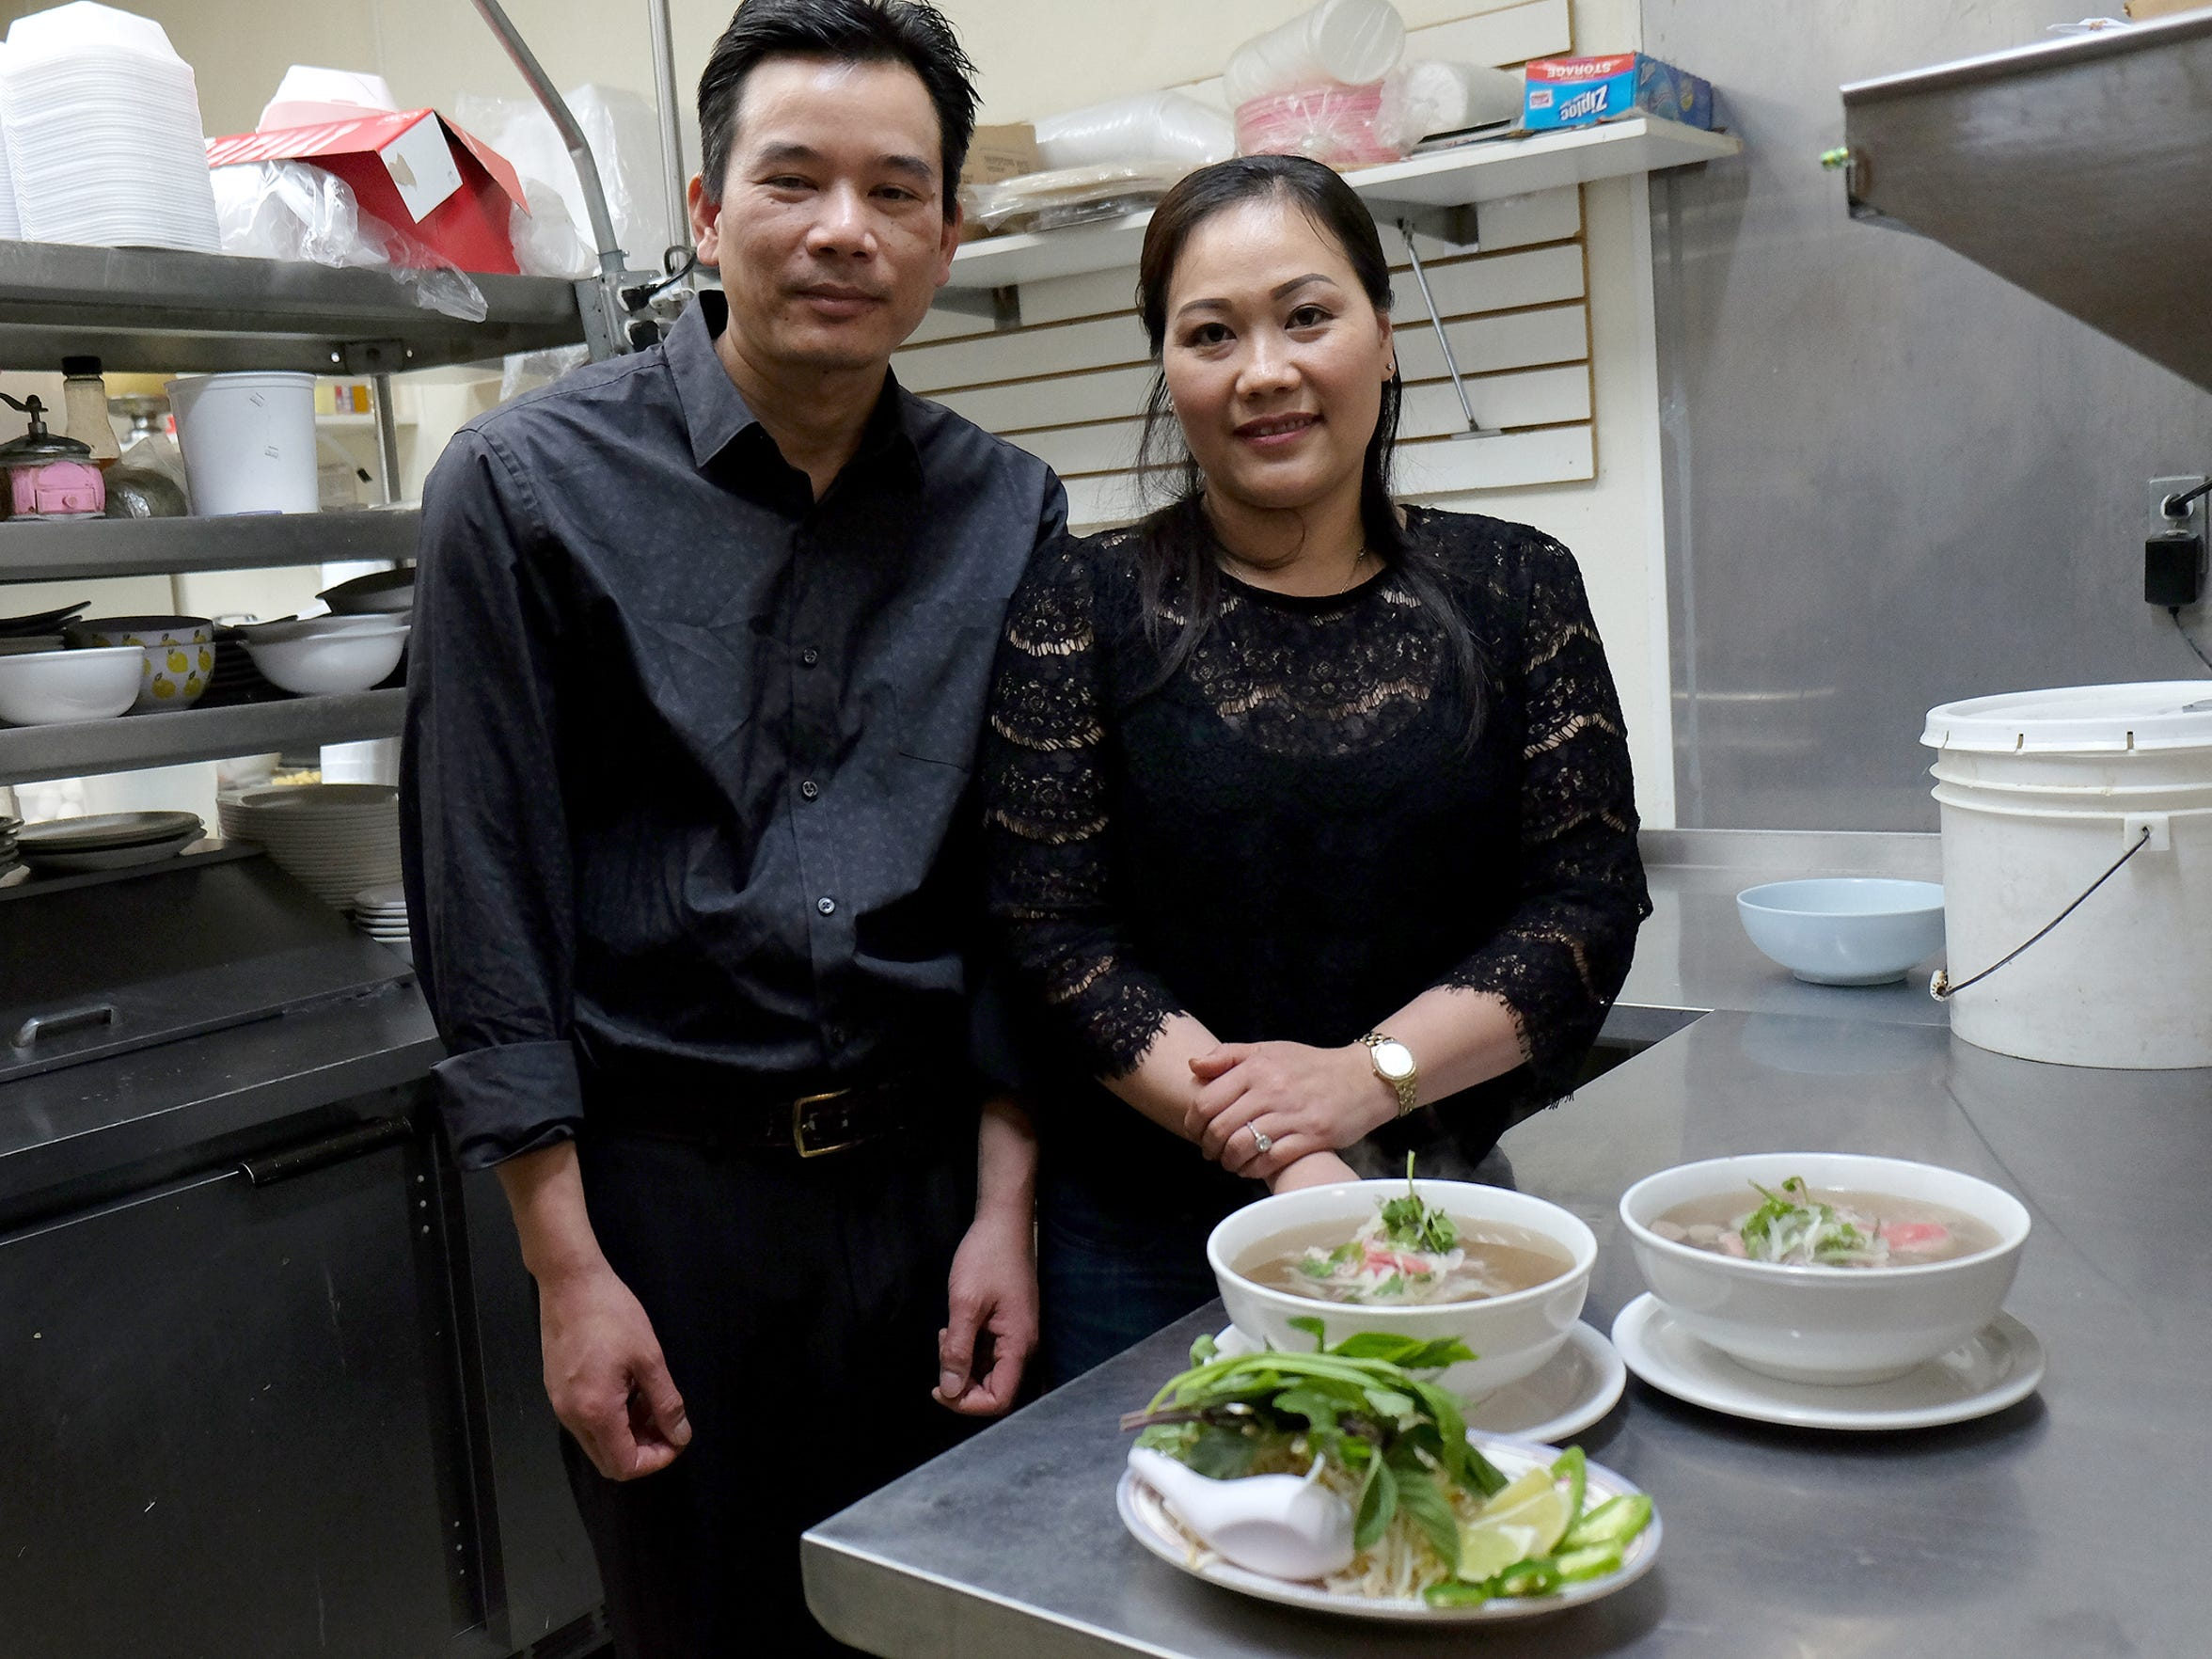 Restaurant owners Quyet Phan, left, and Hien Le say their pho -- Vietnamese beef noodle soup, foreground -- is identical to pho served in Vietnam.